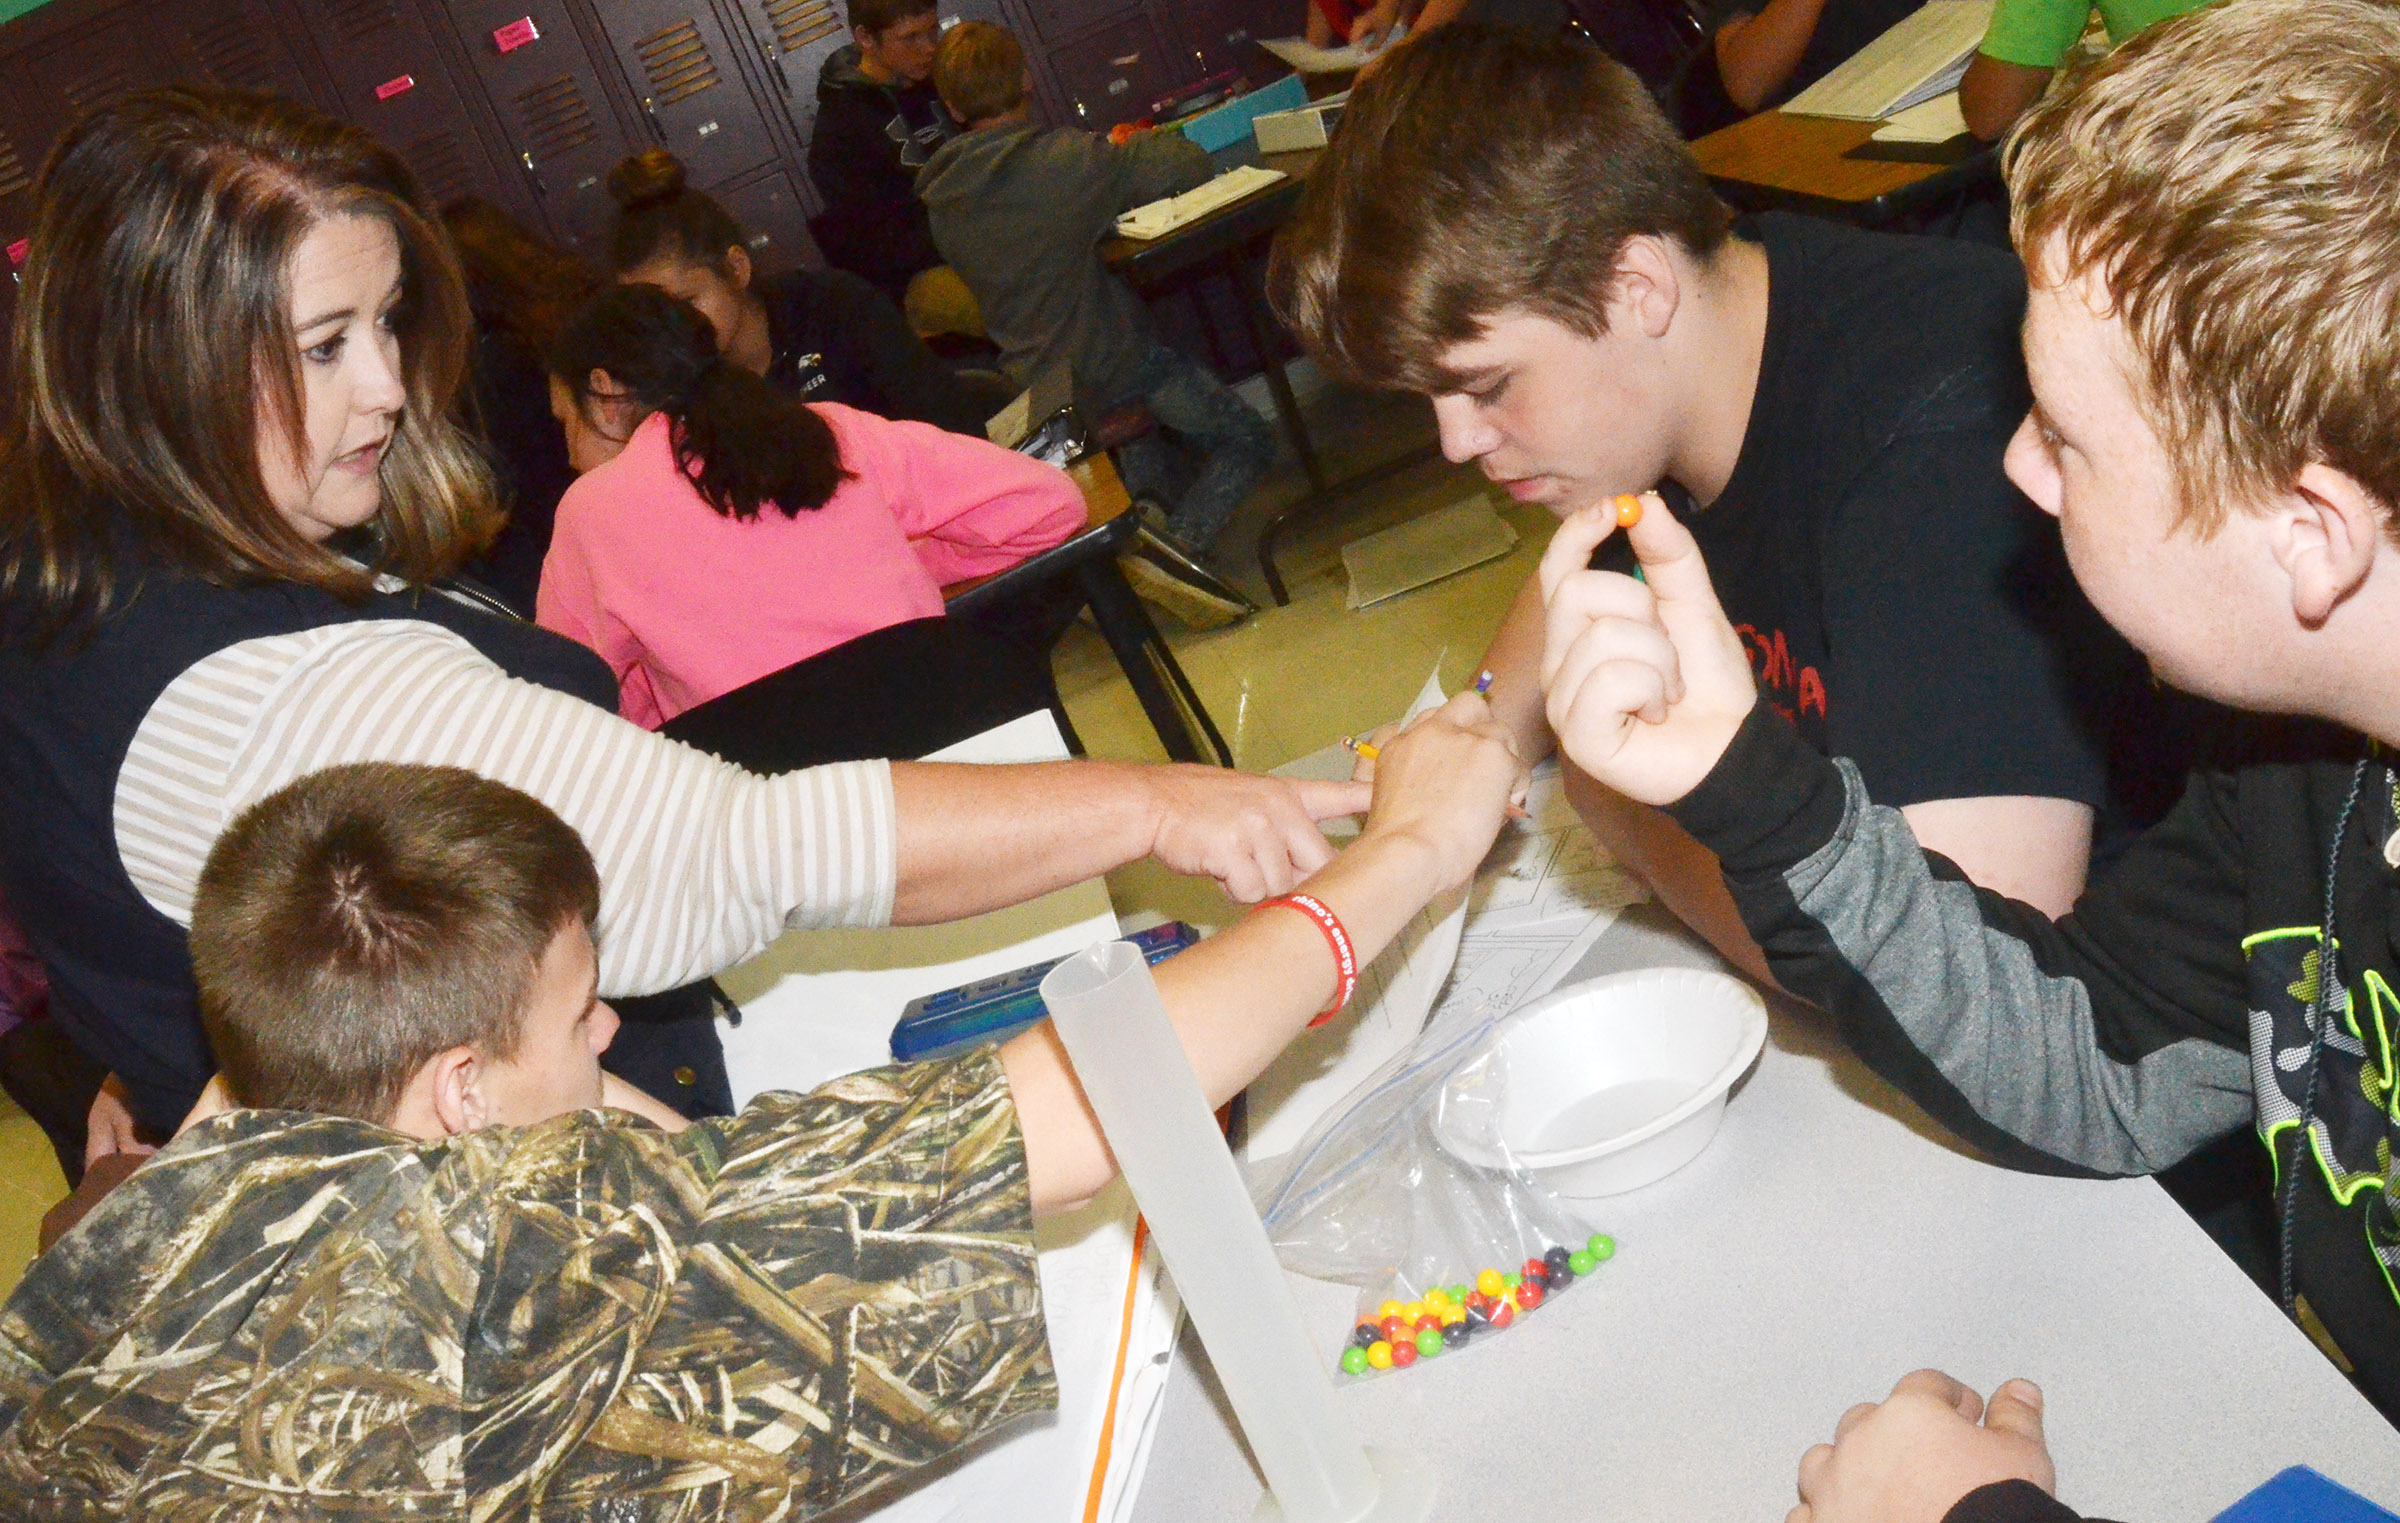 CMS teacher Amy Knifley helps eighth-grade students, from left, Dalton Reynolds, Austin Jeffries and Ryan Milburn as they perform their lab exercise.